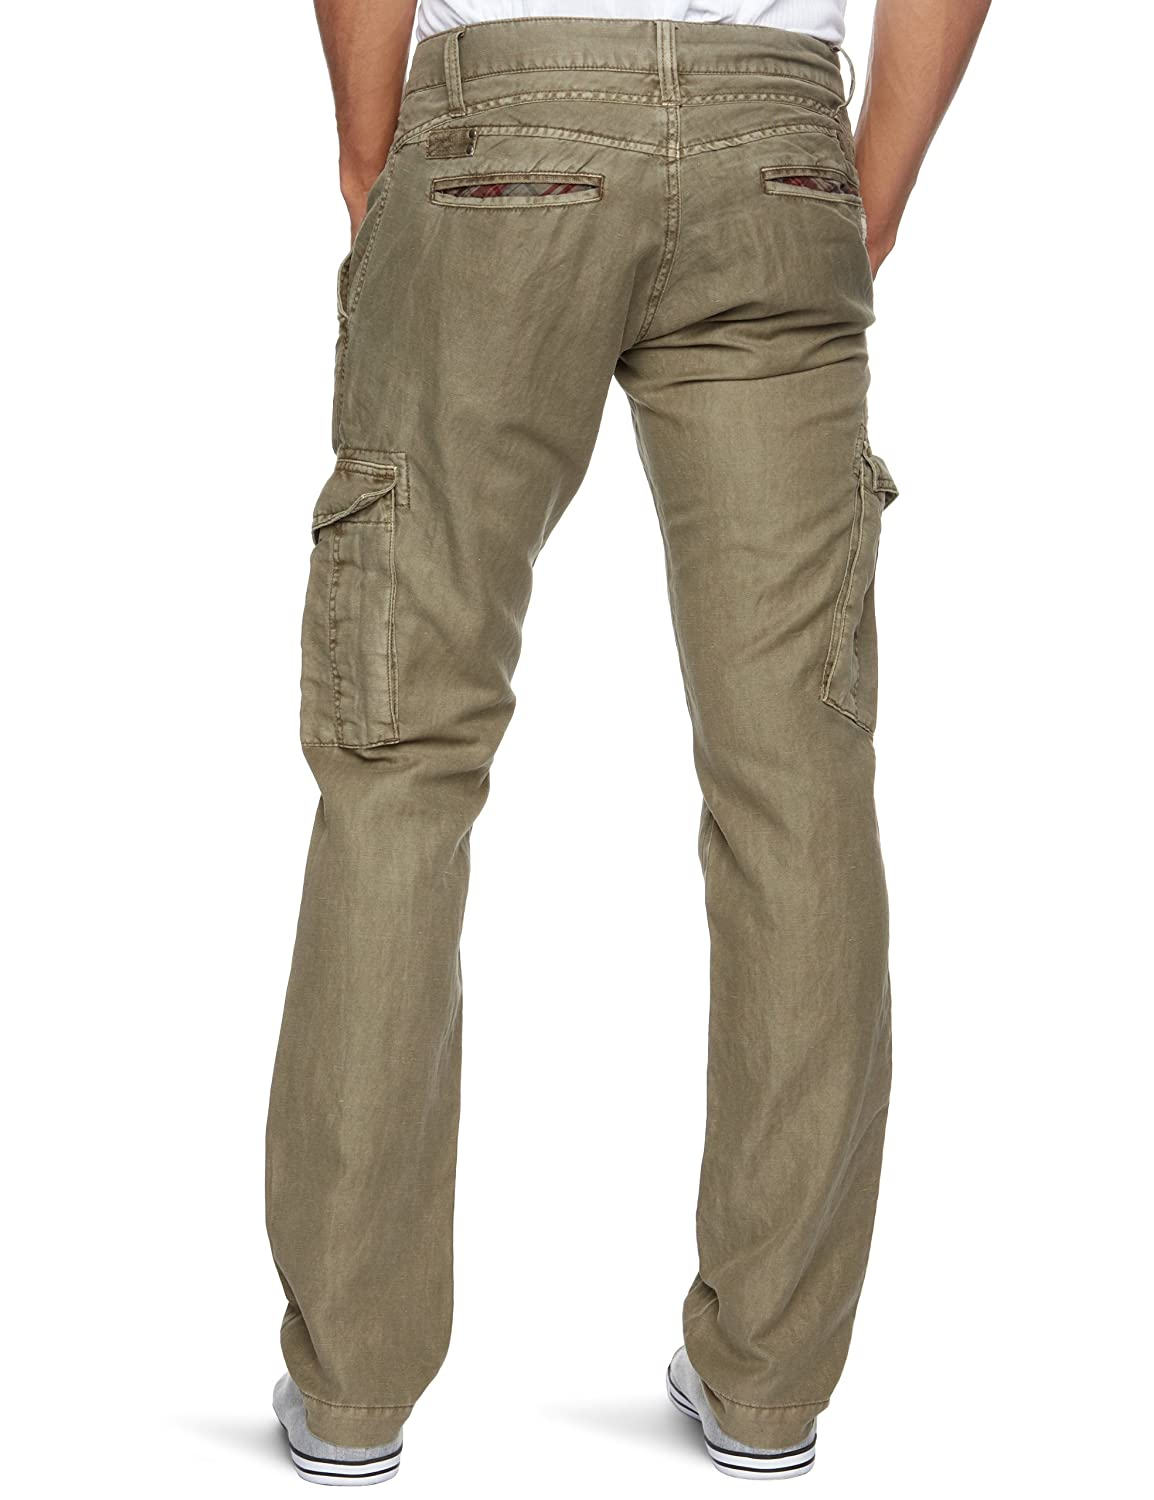 Clearance Excellent Energie Danger Mens Cargo Trousers Energie Sale Get To Buy Clearance Store J8duu